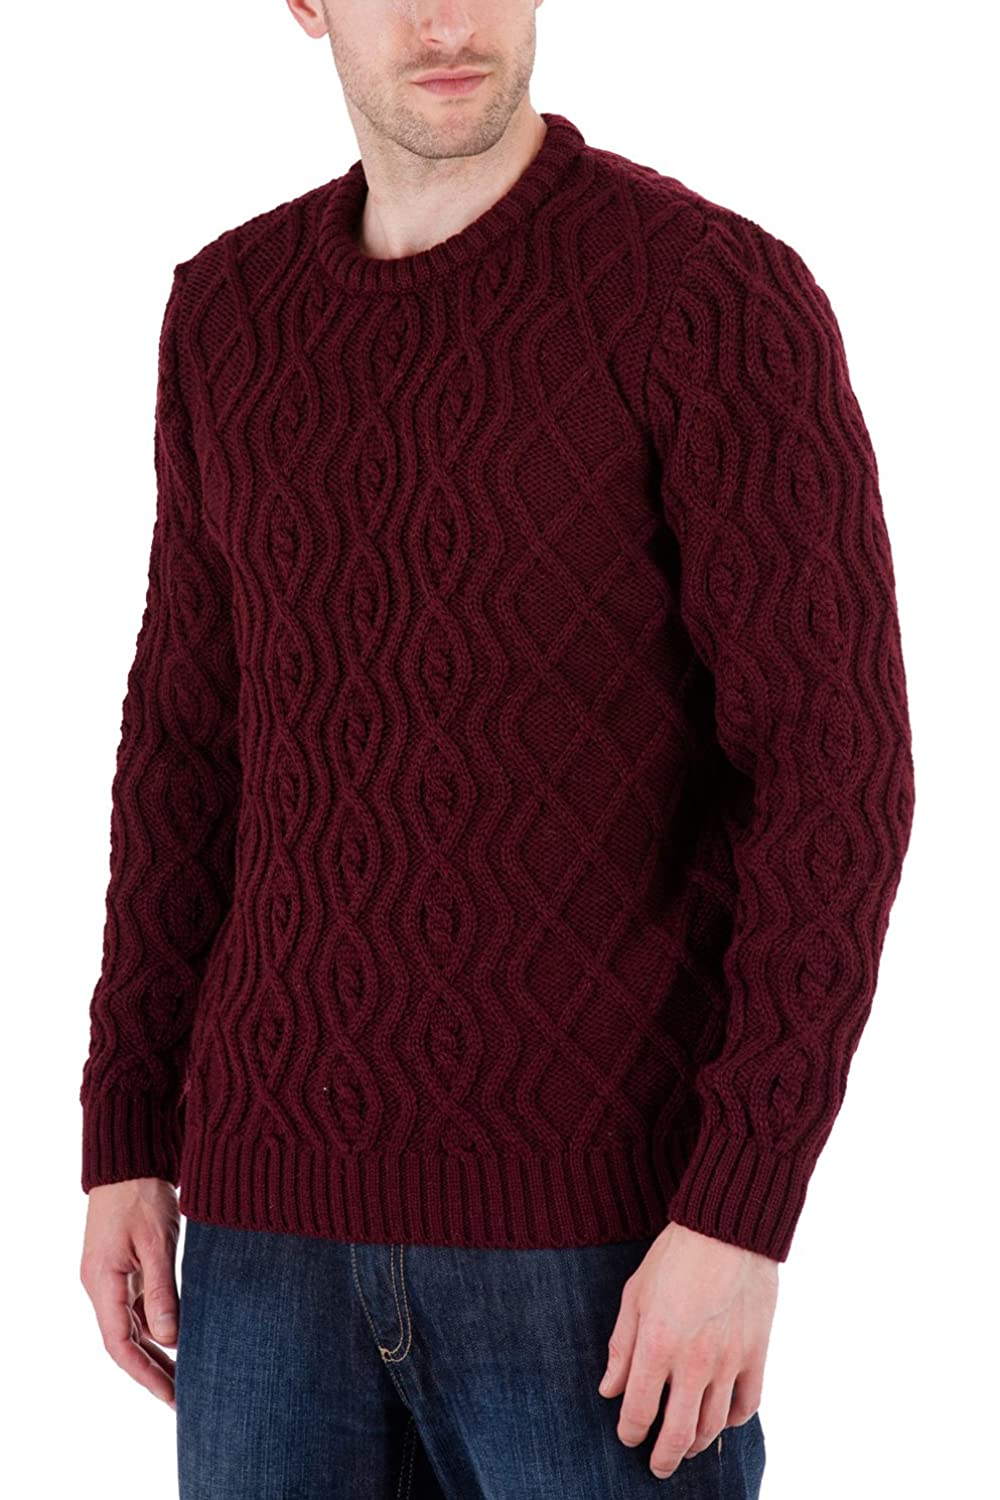 Anson - Burgundy Jumper Sweater - Pure British Wool